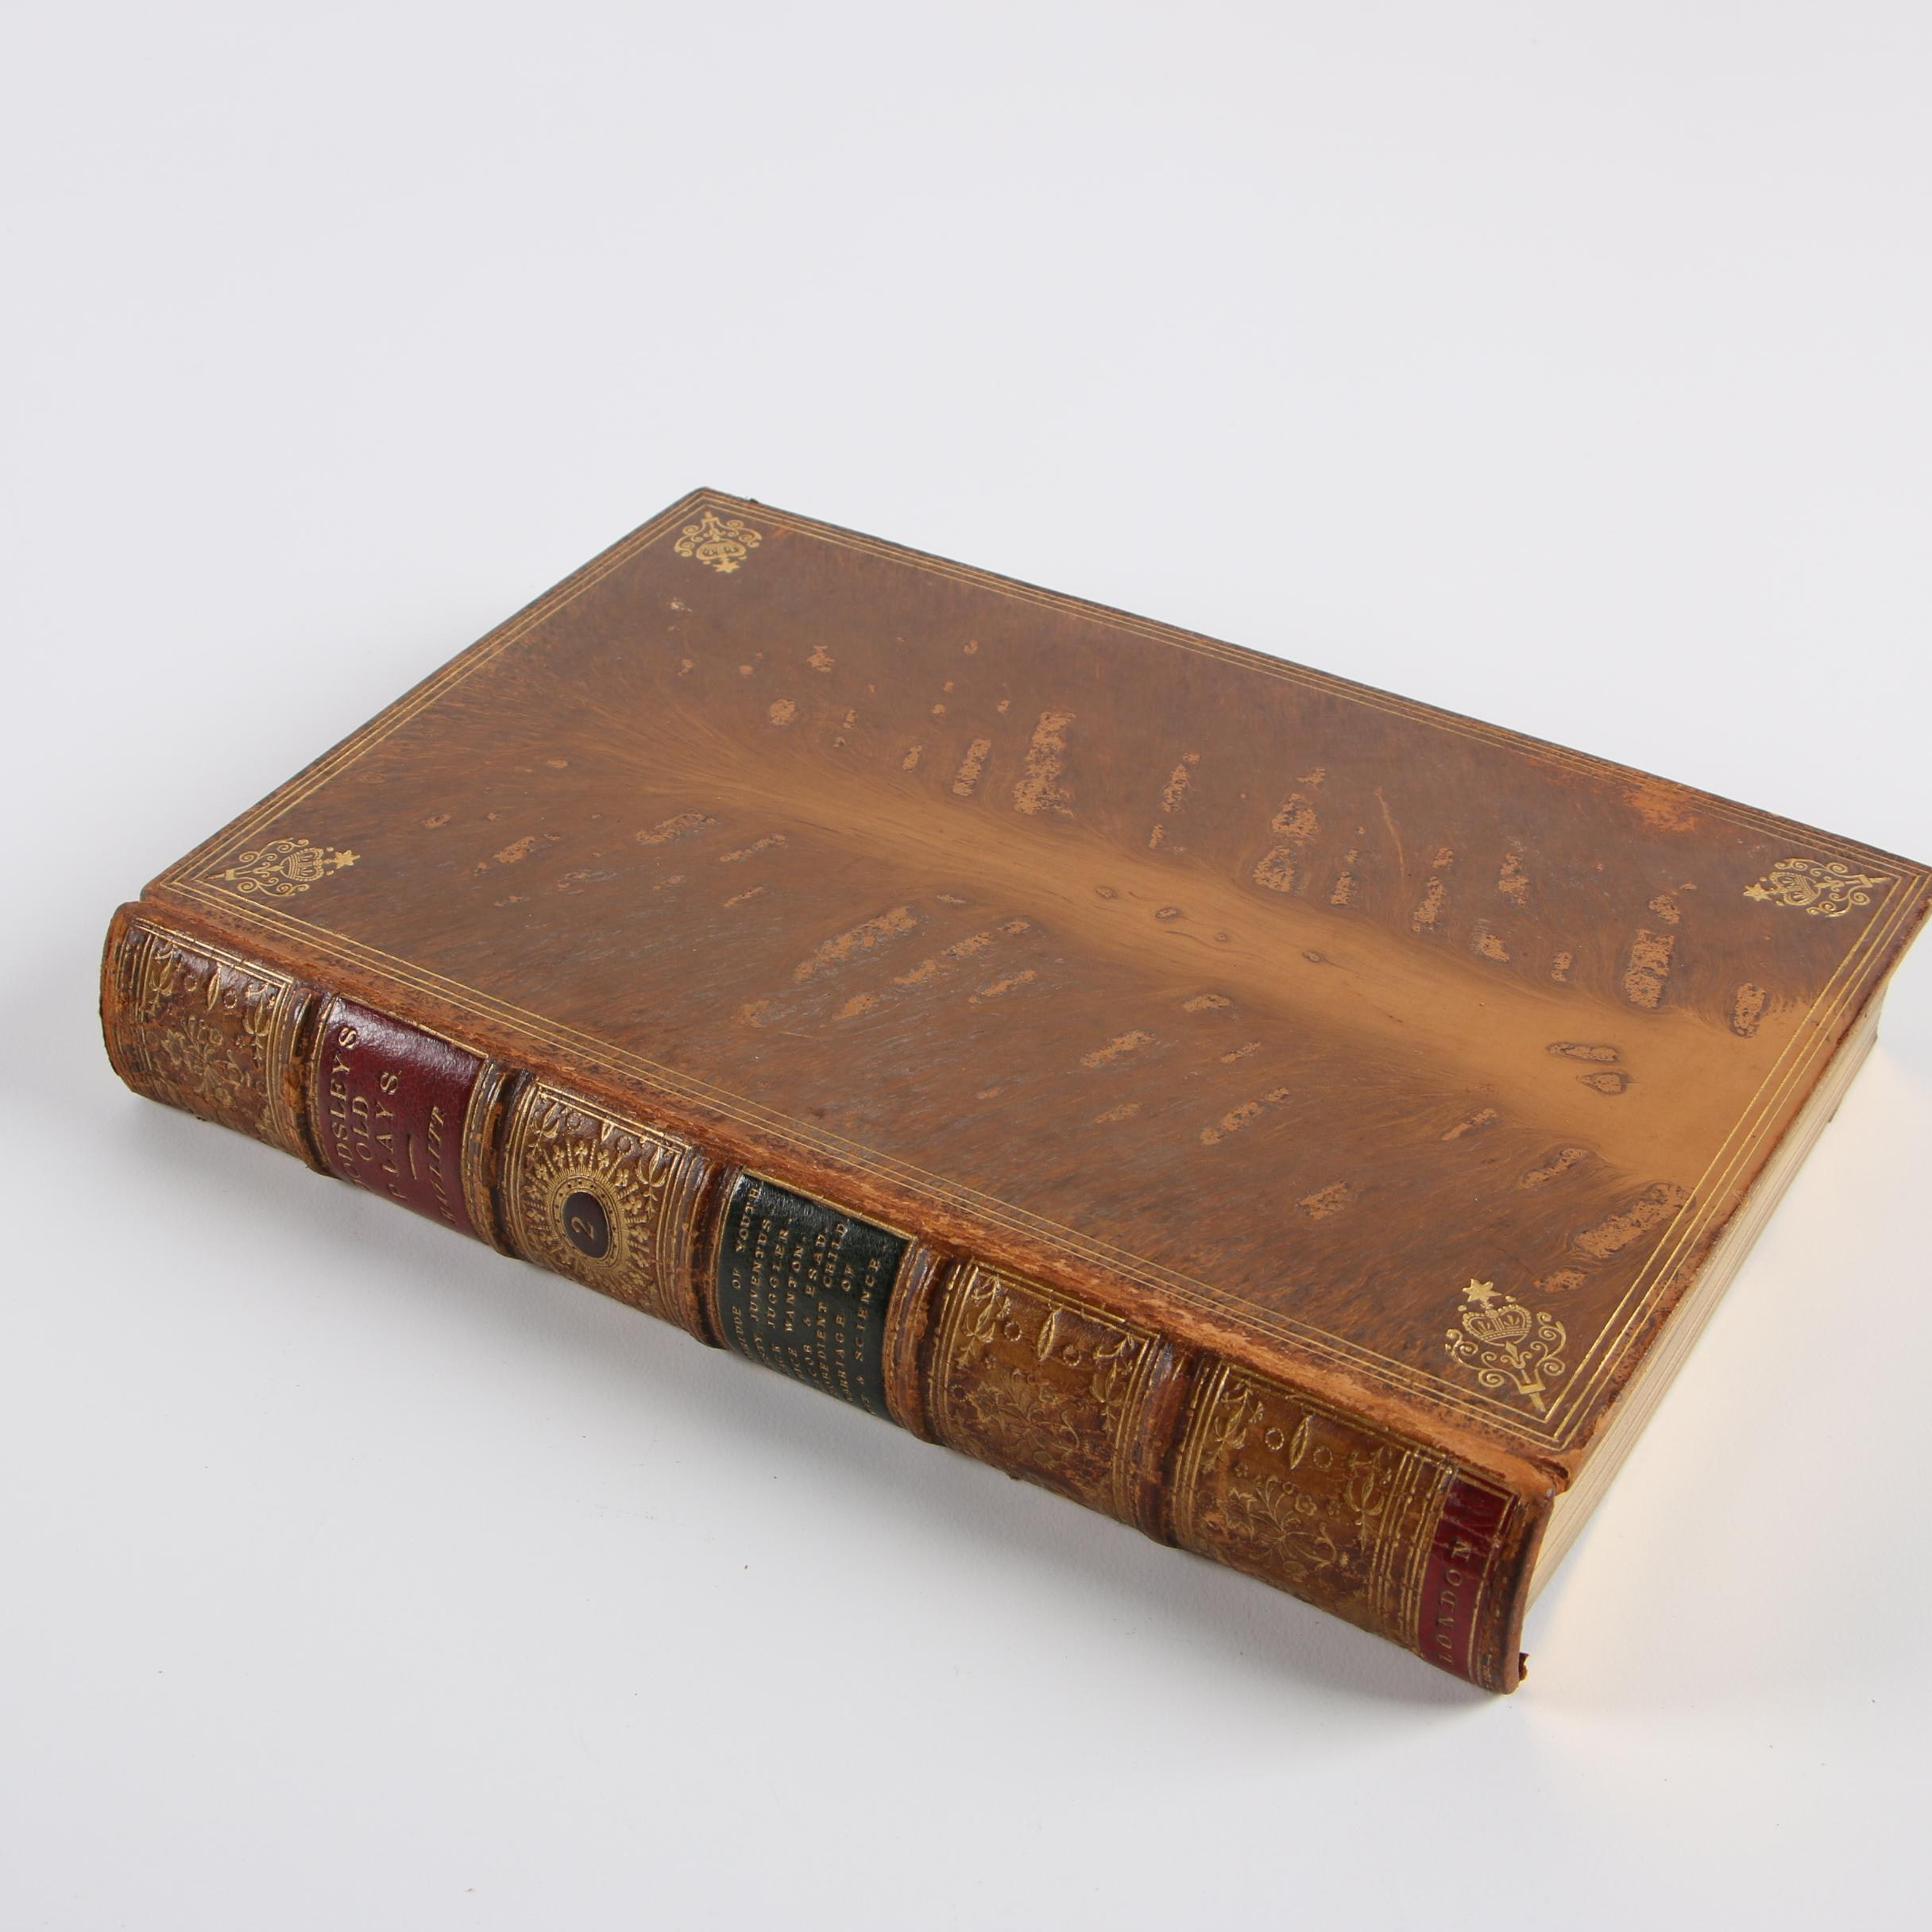 """1874 """"A Select Collection of Old English Plays"""" Volume II by W. Carew Hazlitt"""